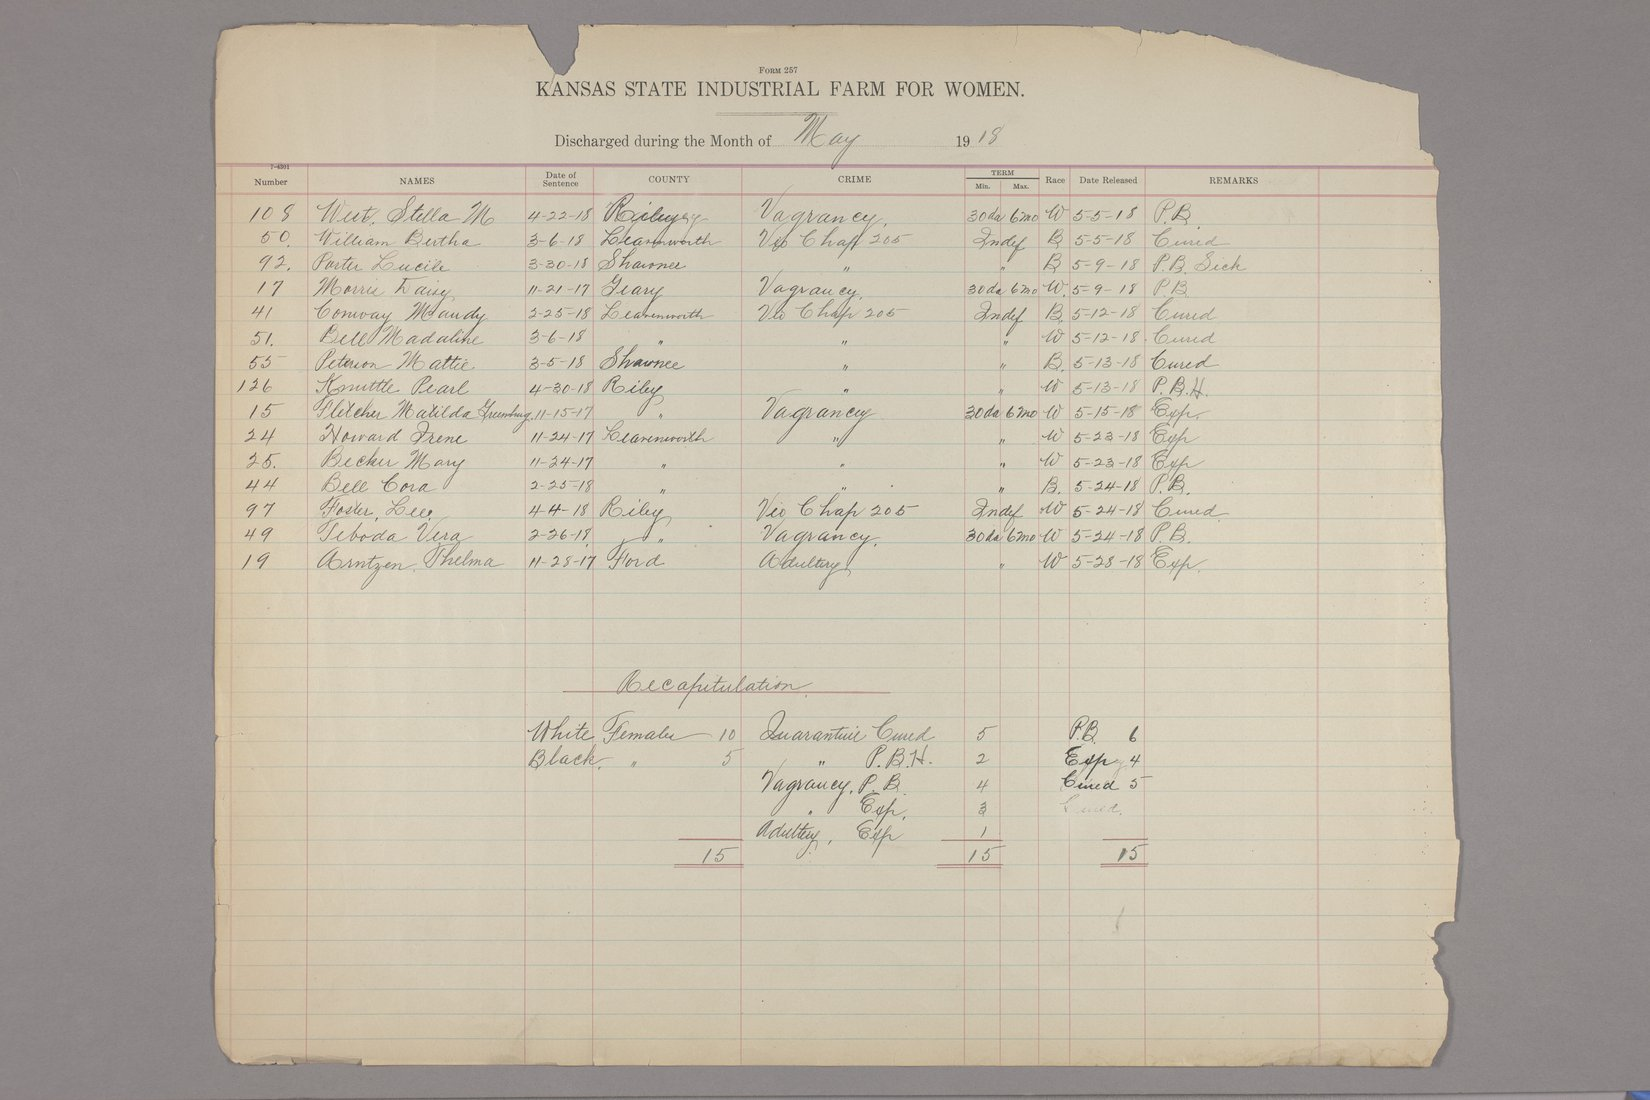 Inmates discharged register, Kansas State Industrial Farm for Women - May, 1918 & recapitulation page